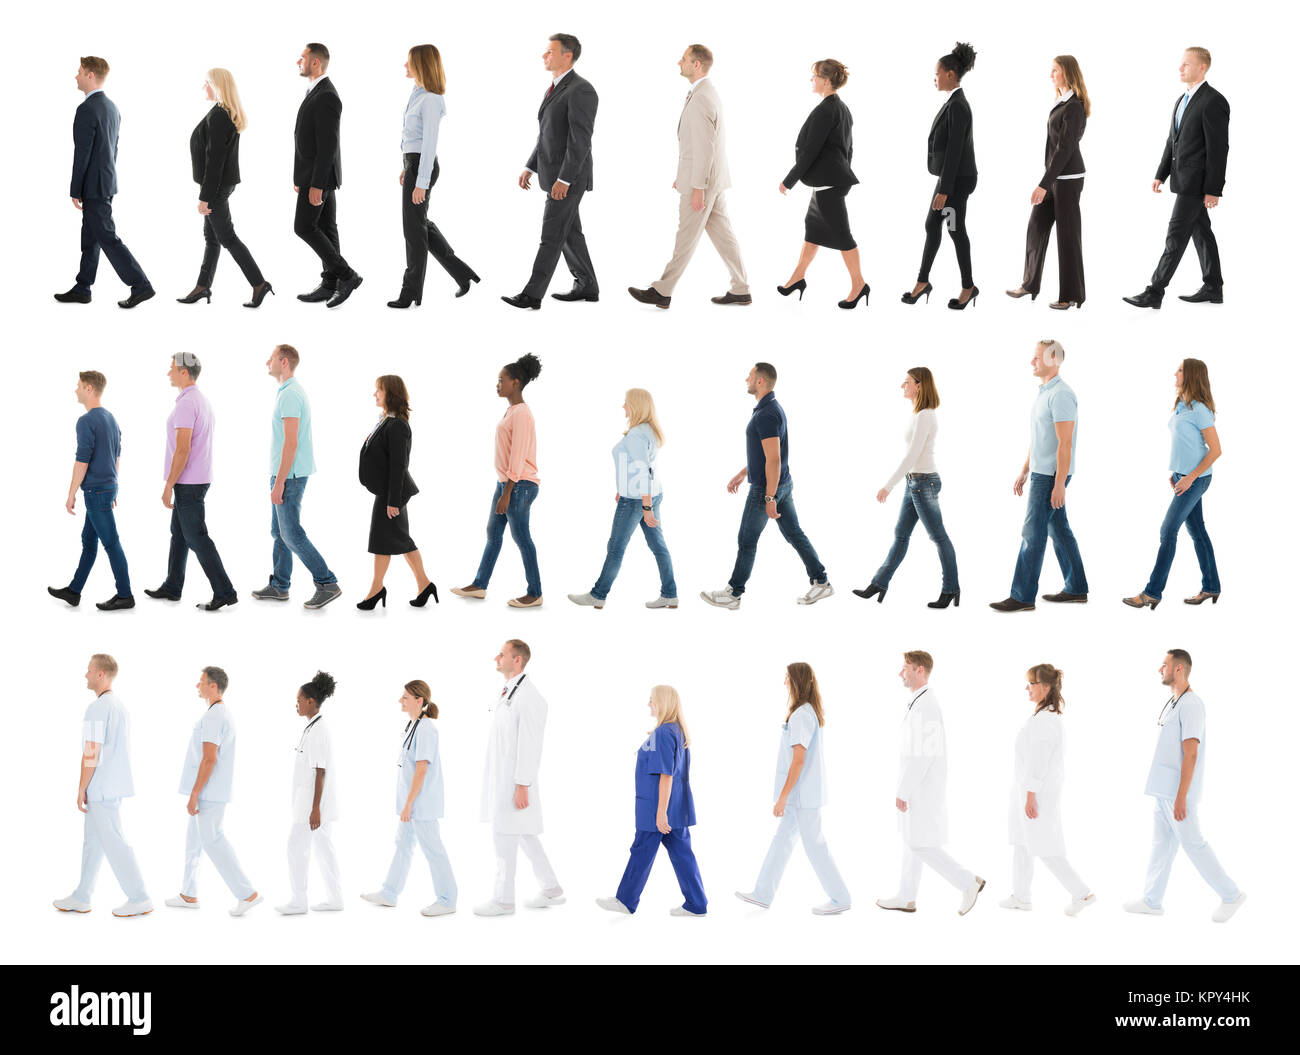 Collage Of People Walking In Line - Stock Image